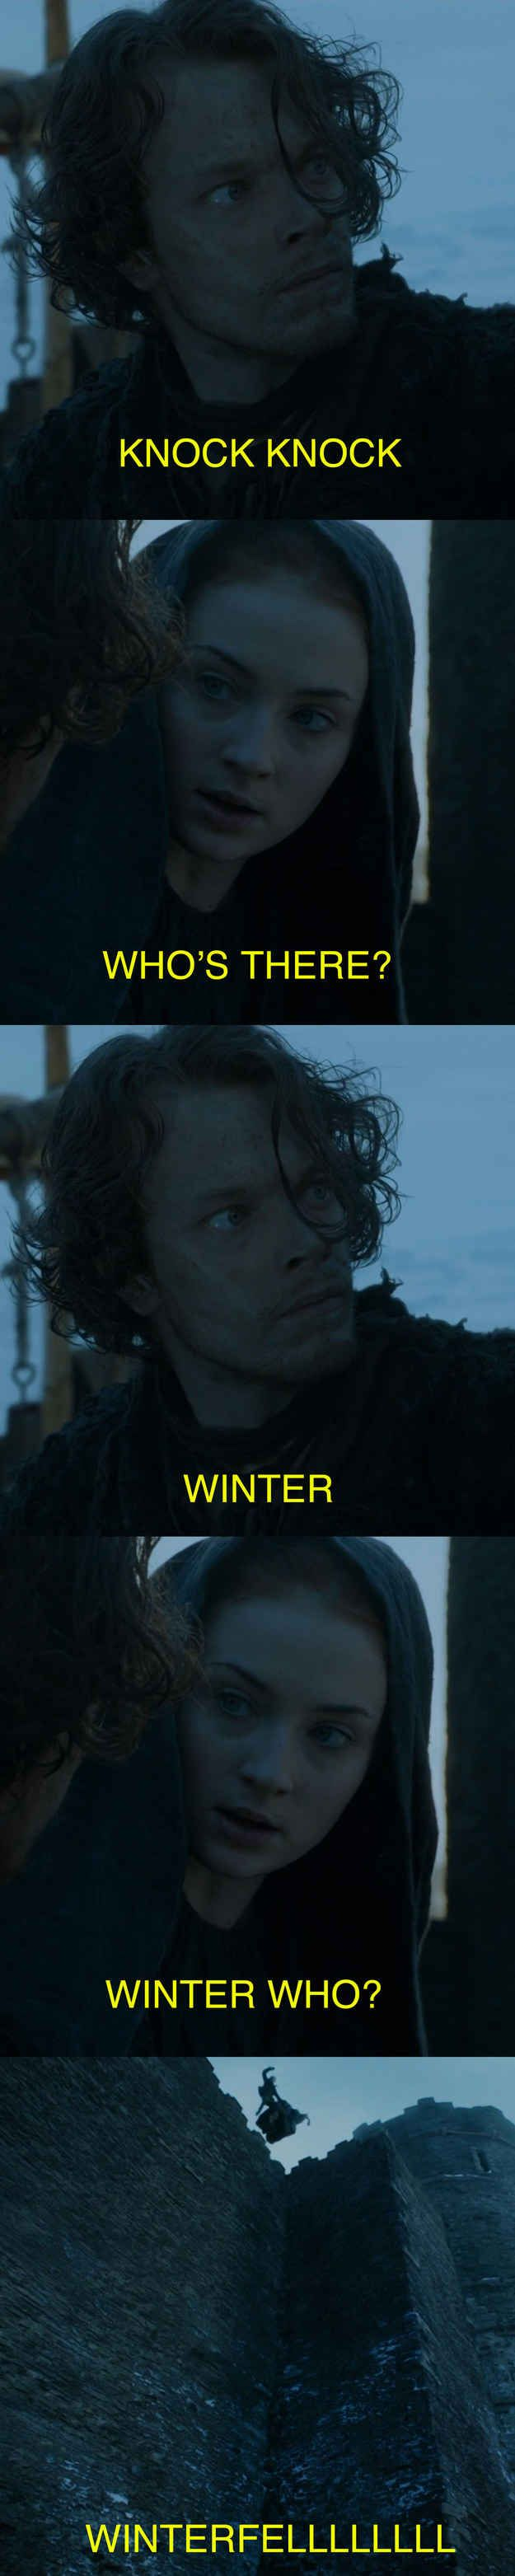 When Theon decided to lighten the mood with a joke.